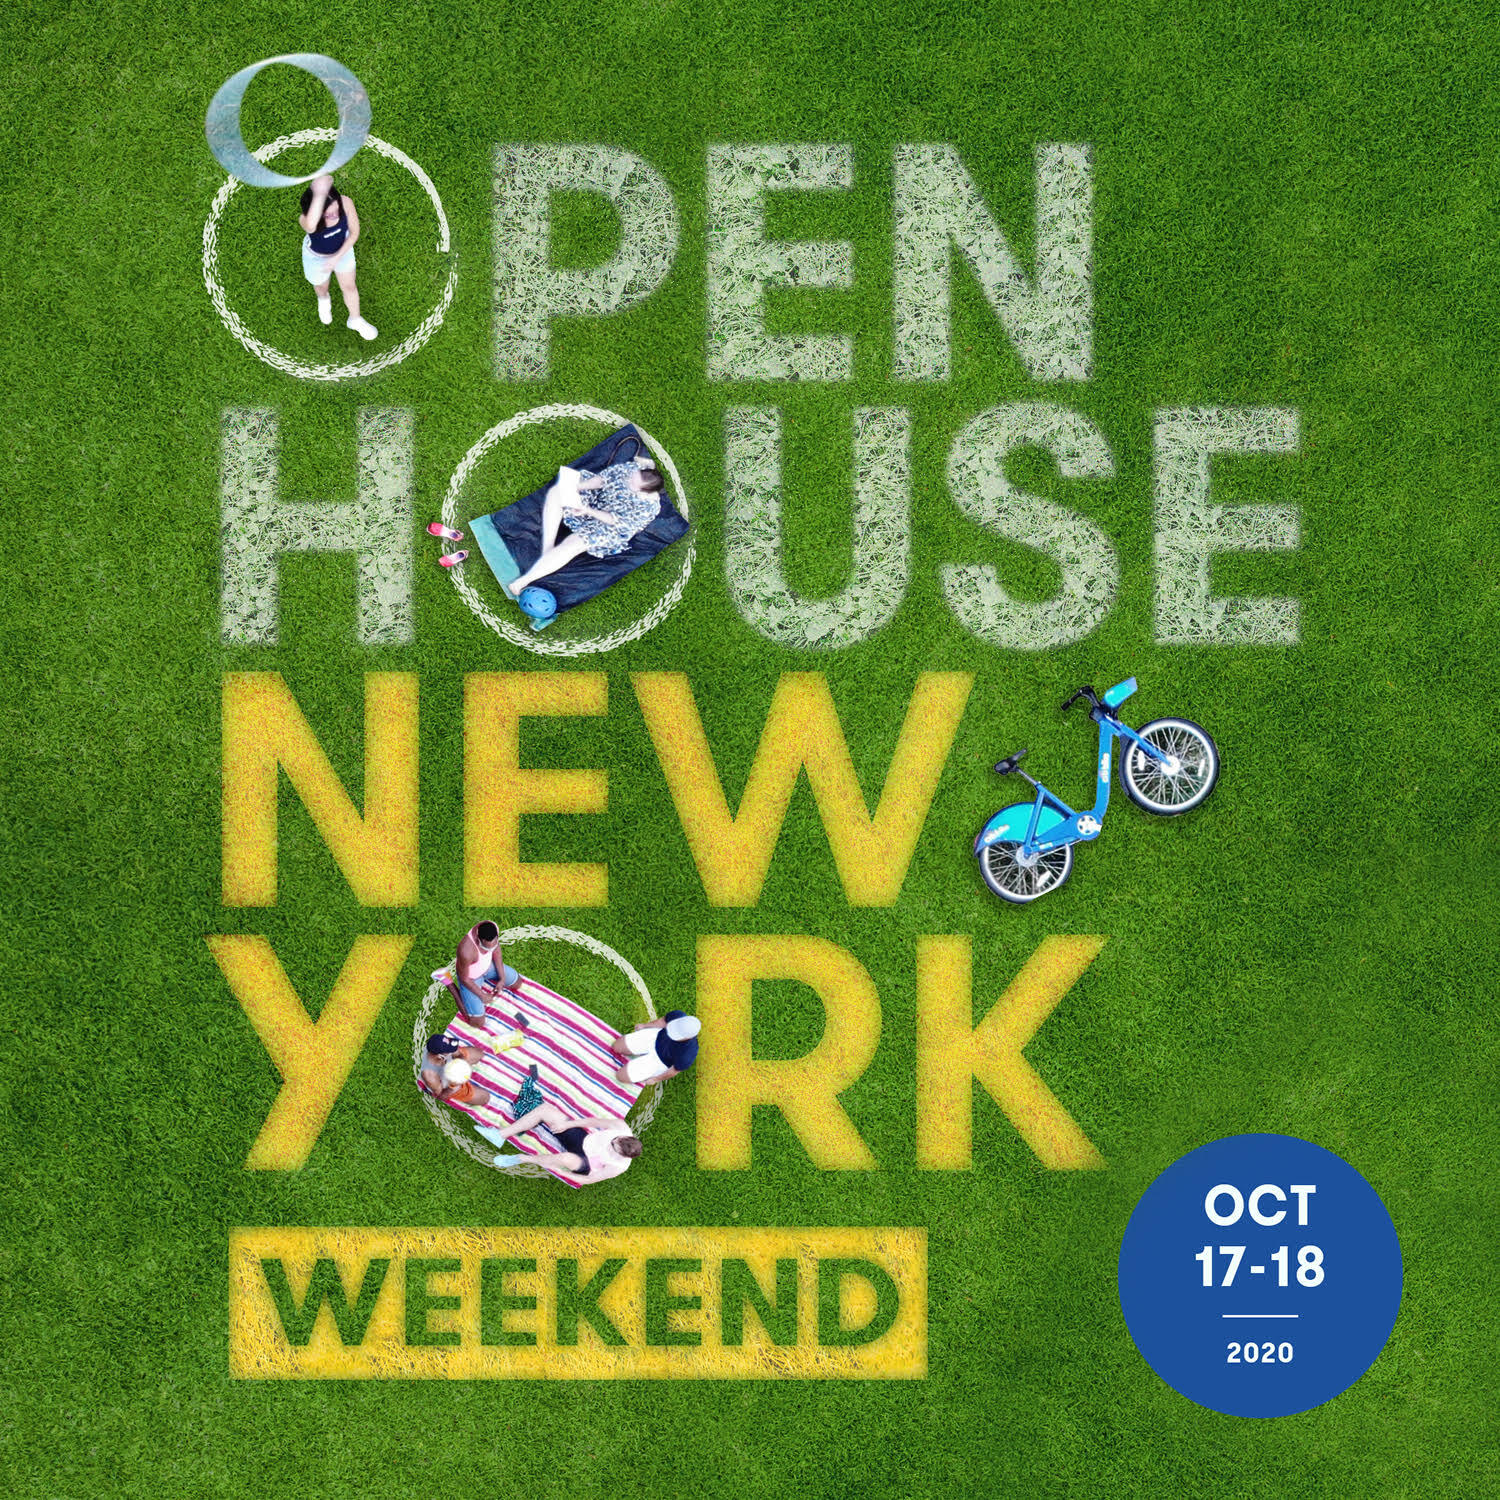 photo of grass with open house new york written over it